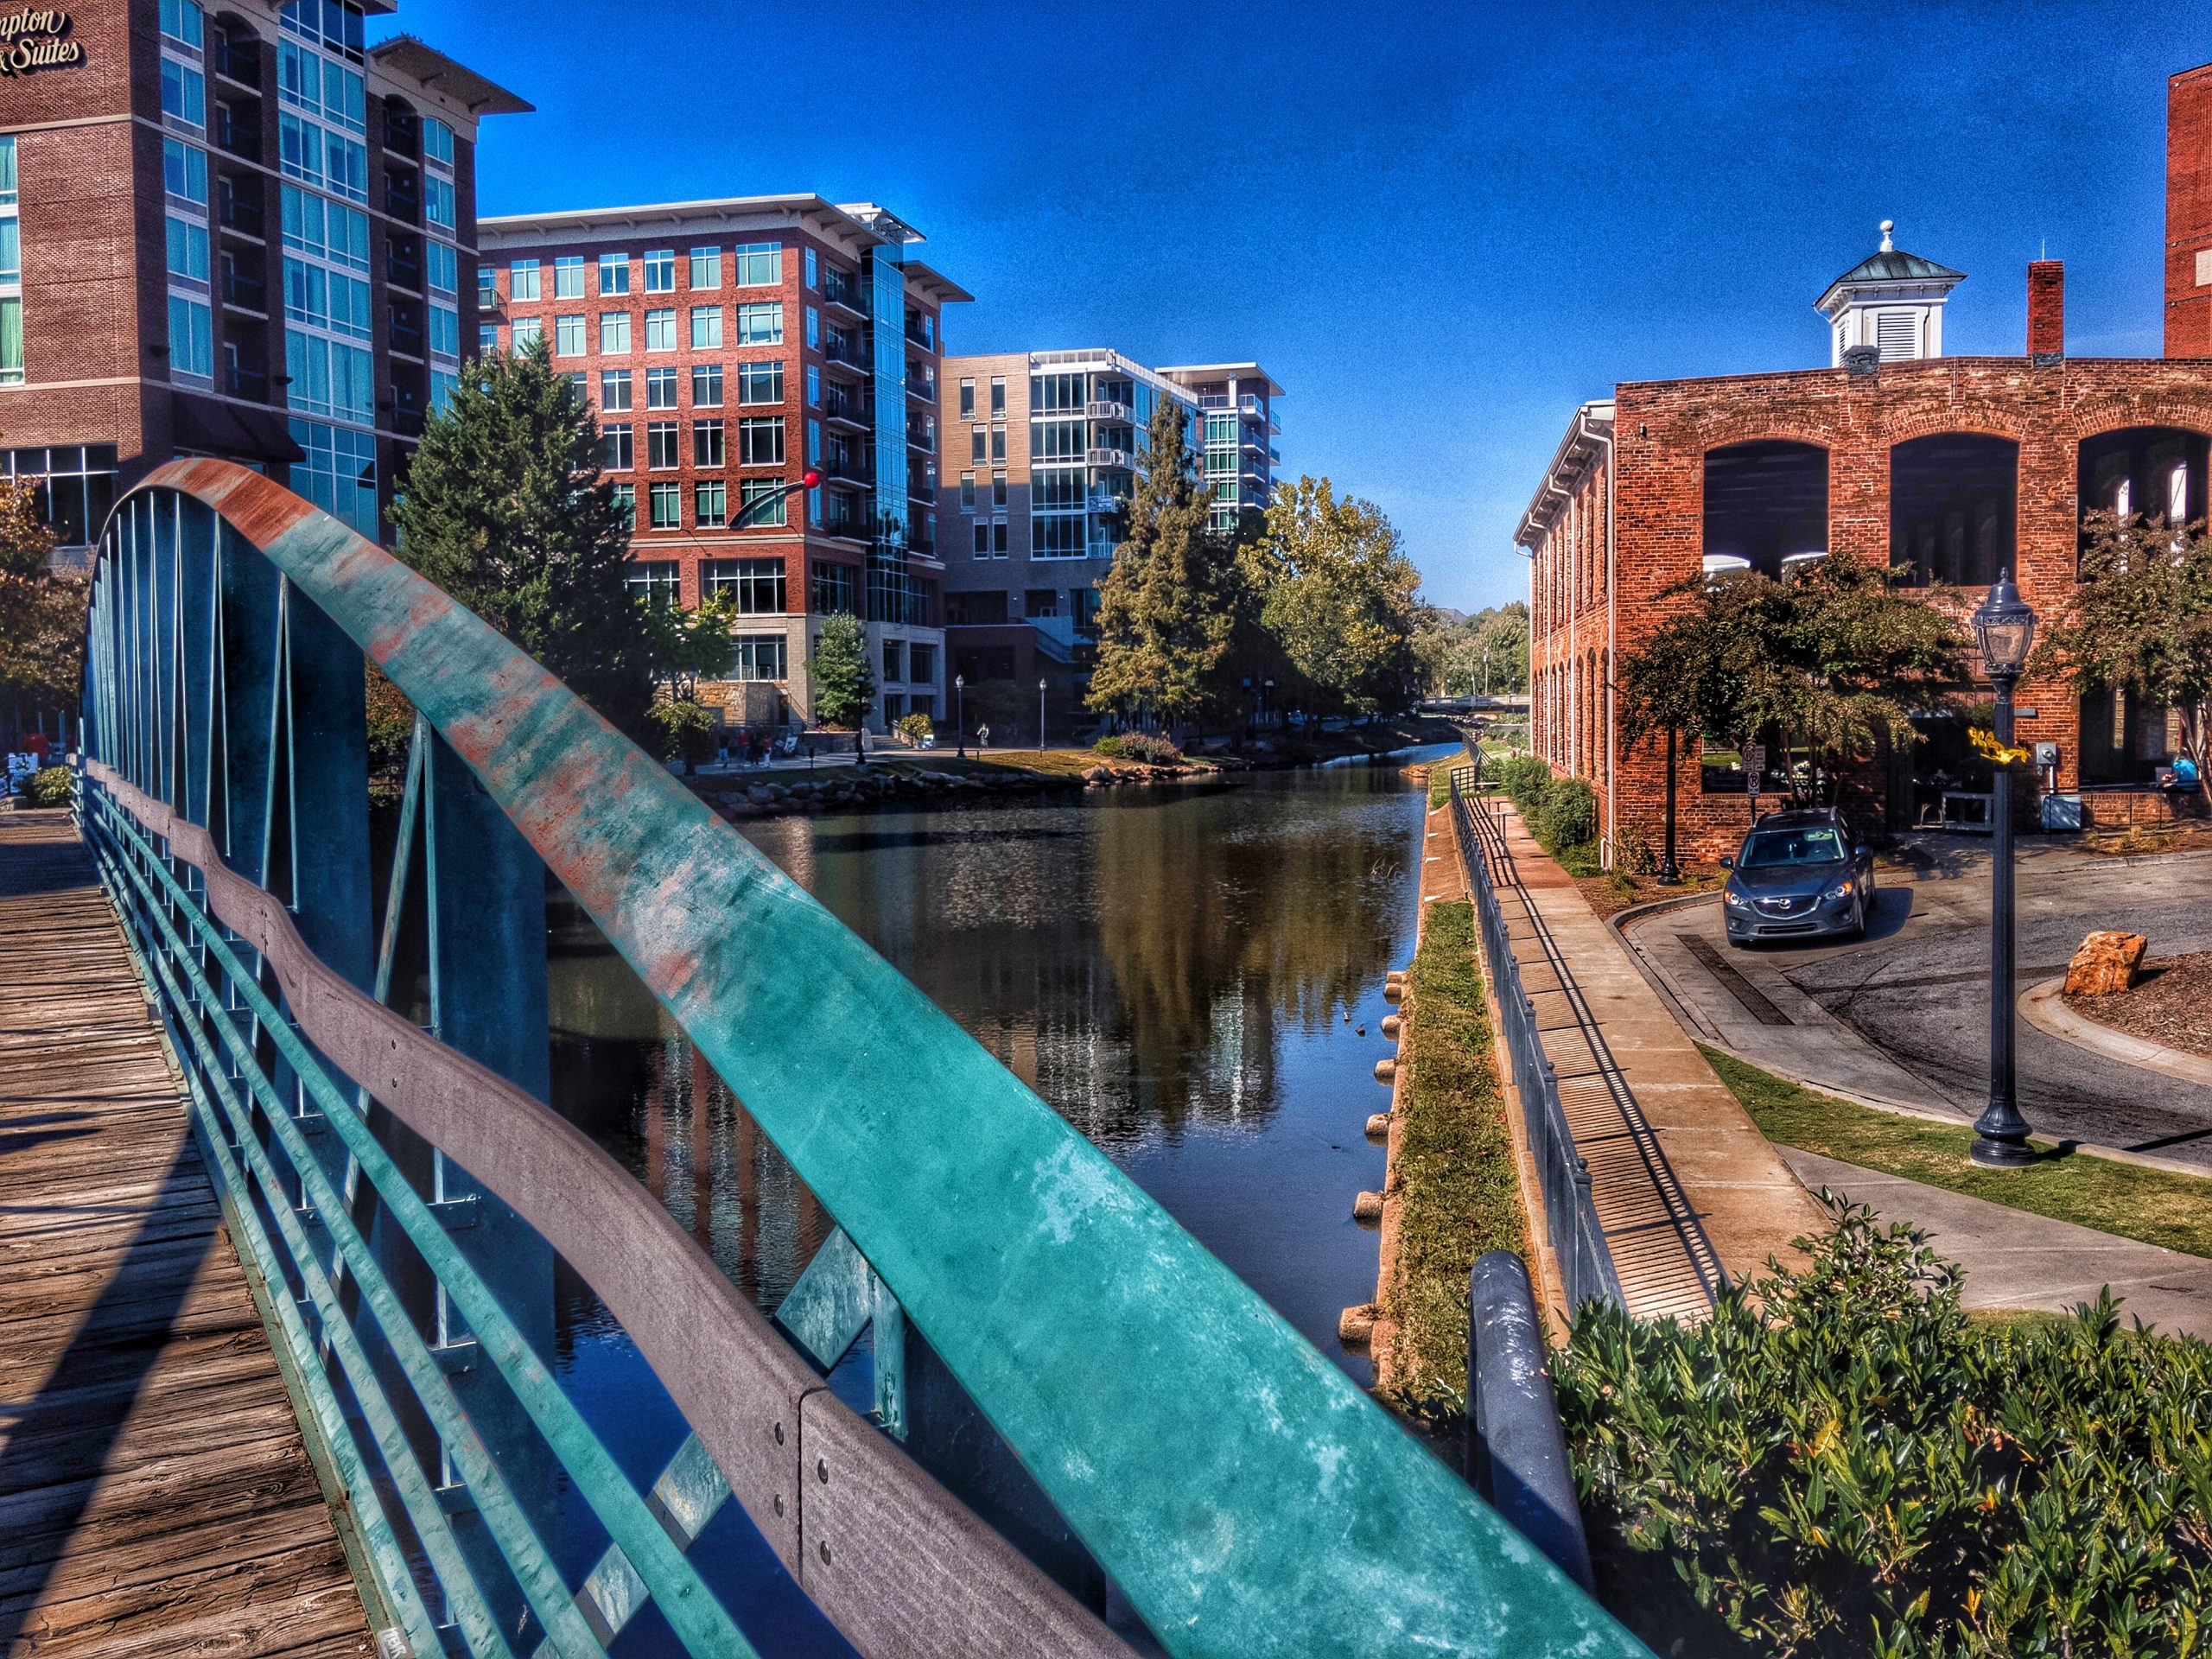 Reedy River, Greenville, South Carolina